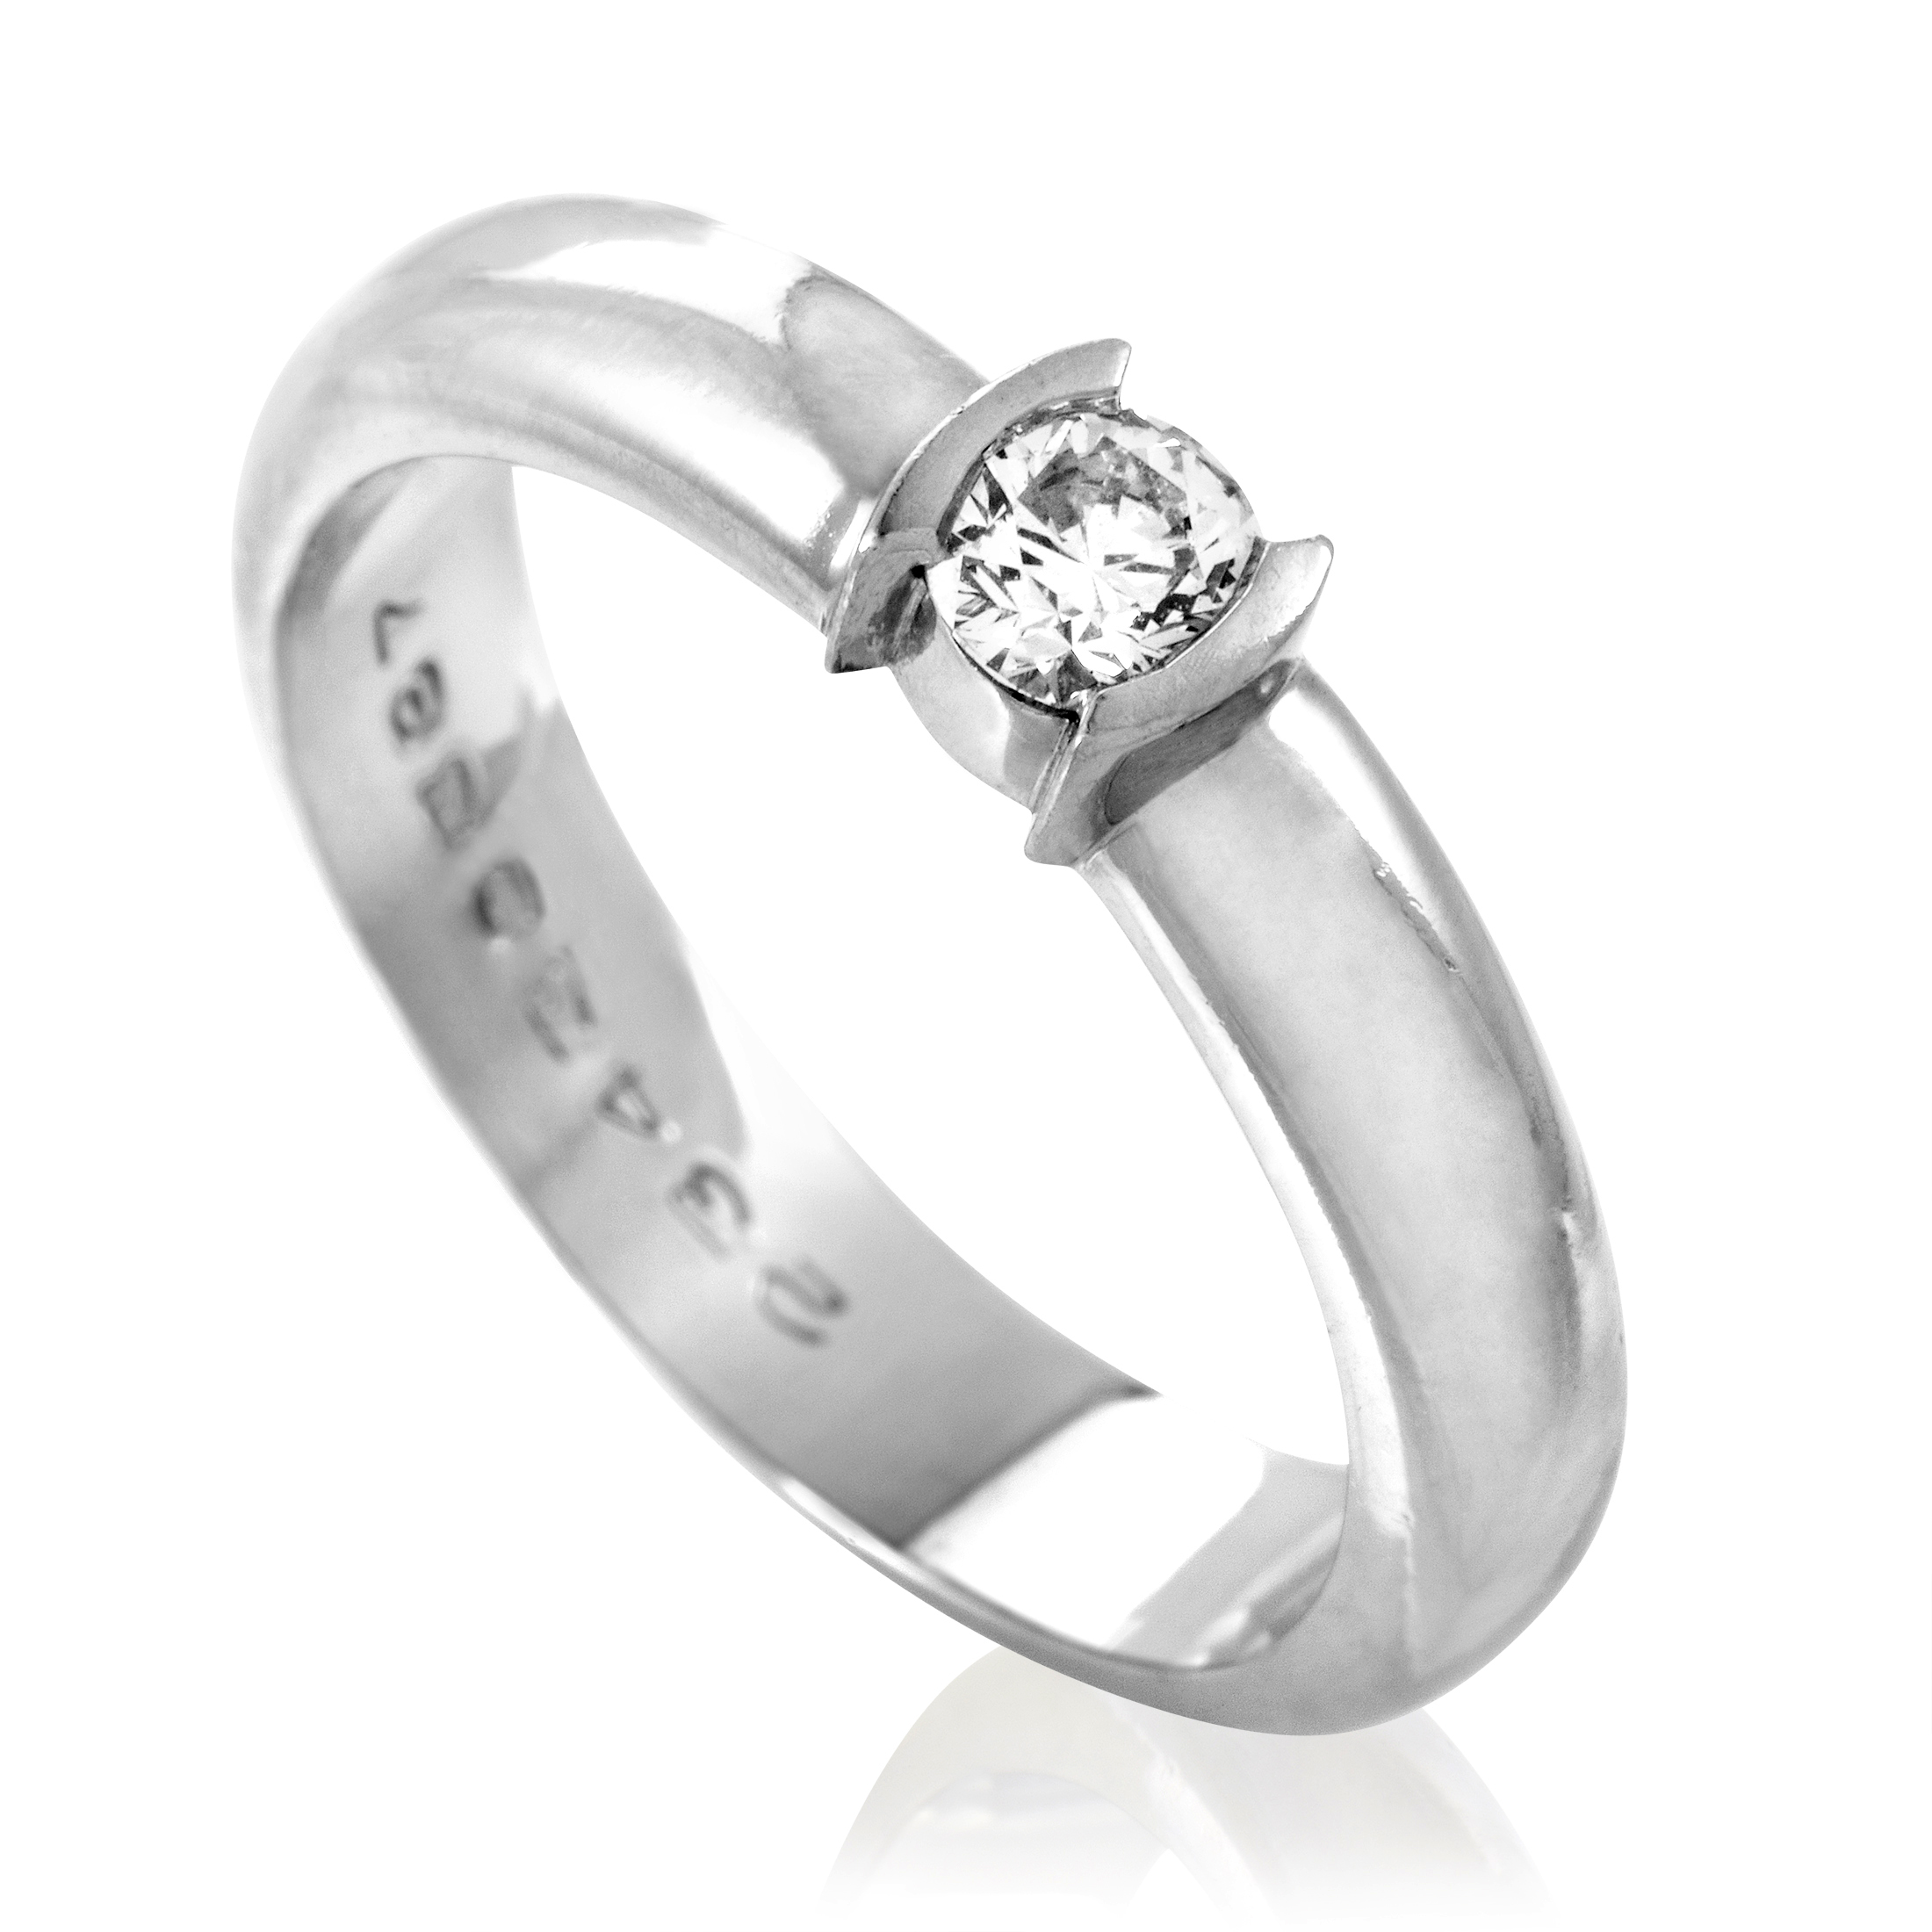 Tiffany & Co. Etoile Women's Platinum & .21ct Diamond Solitaire Engagement Ring